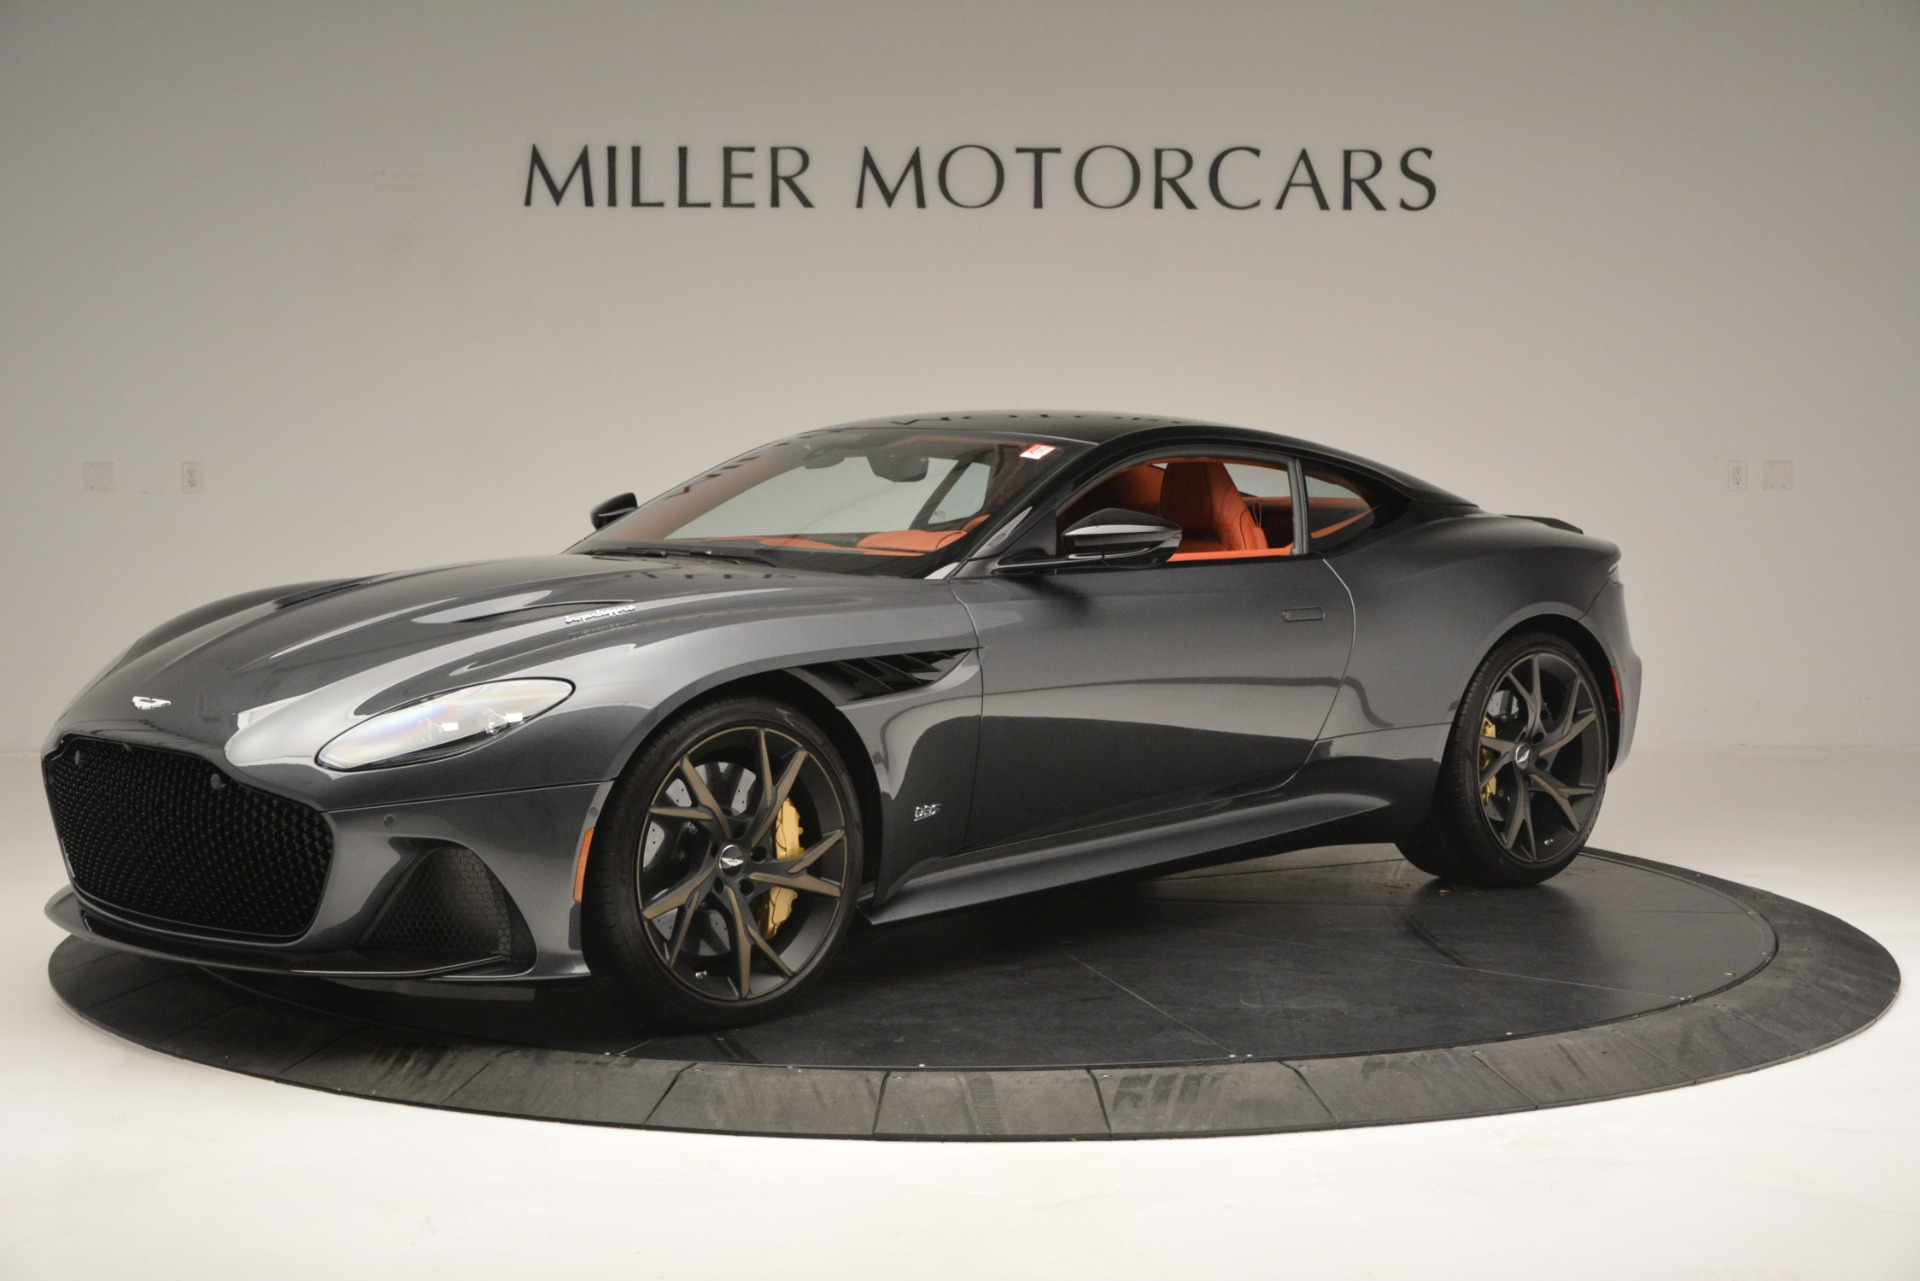 New 2019 Aston Martin DBS Superleggera For Sale In Westport, CT